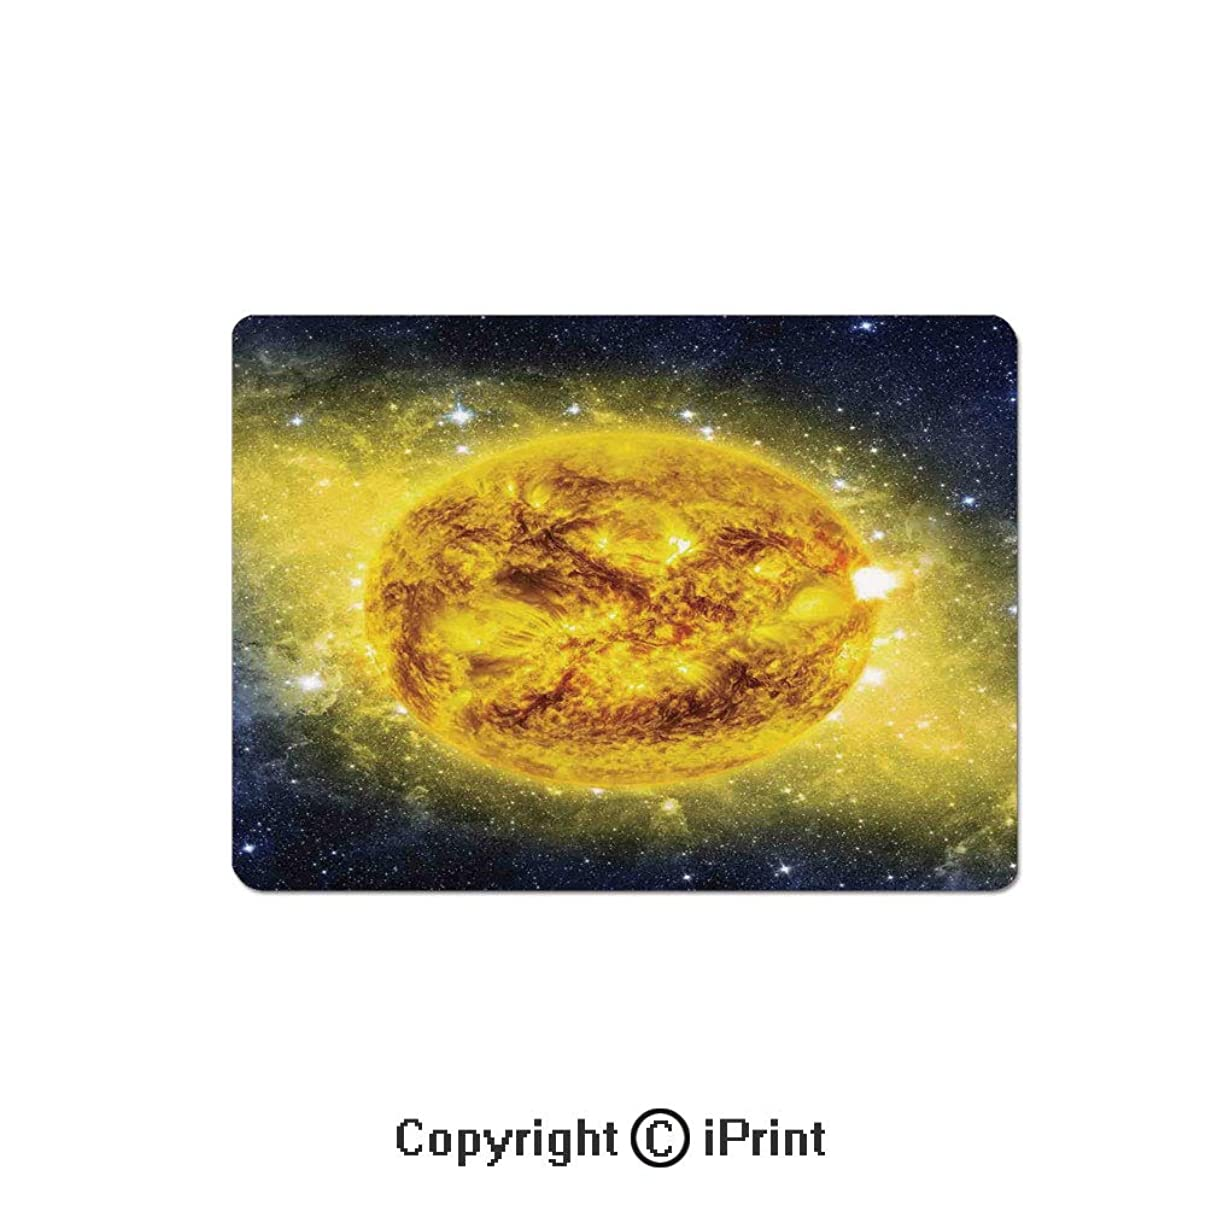 Large Gaming Mouse Pad Panorama of Sun in Space with Luminous Effects Dynamic Center of Solar System Print Extended Mat Desk Pad Mousepad Non-Slip Rubber Mice Pads 9.8